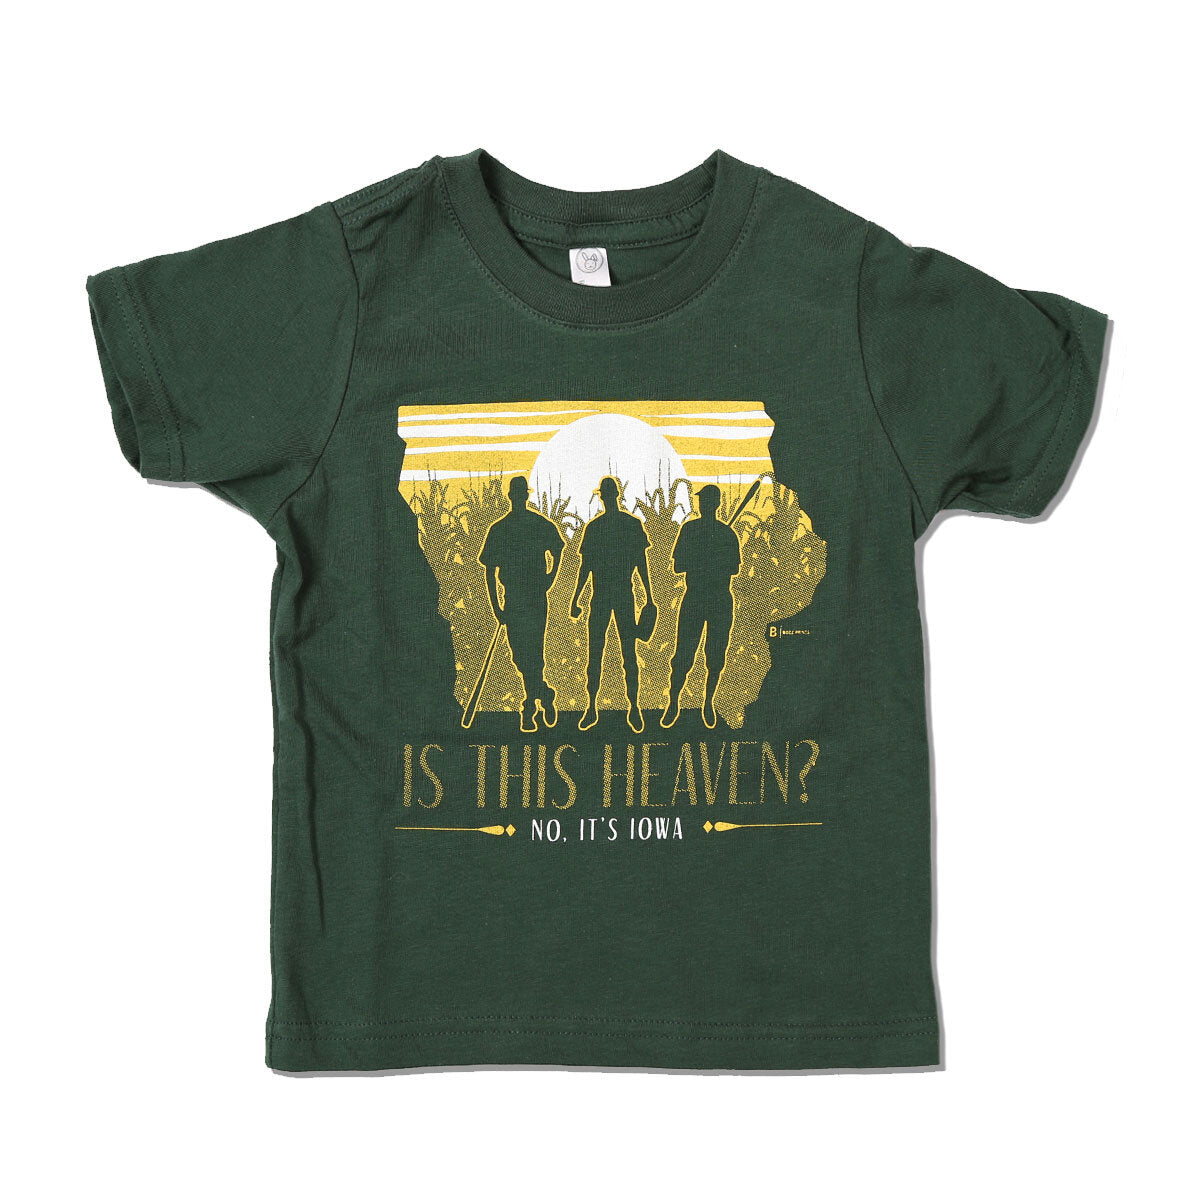 Is this Heaven? No It's Iowa Kids T-Shirt